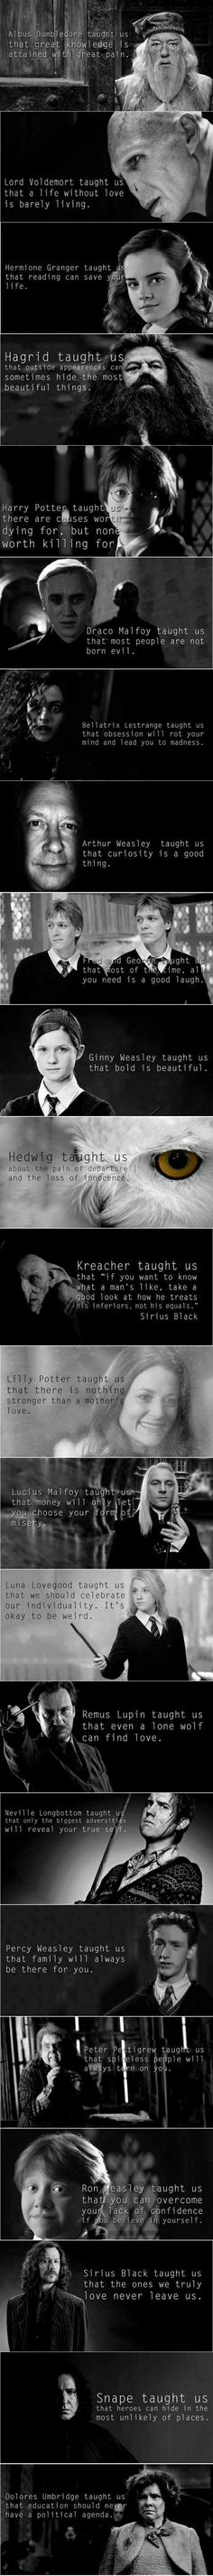 the moral of Harry Potter is. And the moral of Harry Potter is.And the moral of Harry Potter is. Memes Do Harry Potter, Potter Facts, Harry Potter Fandom, Harry Potter Characters, Harry Potter World, Harry Potter Universal, Disney Characters, Hogwarts, Golden Trio